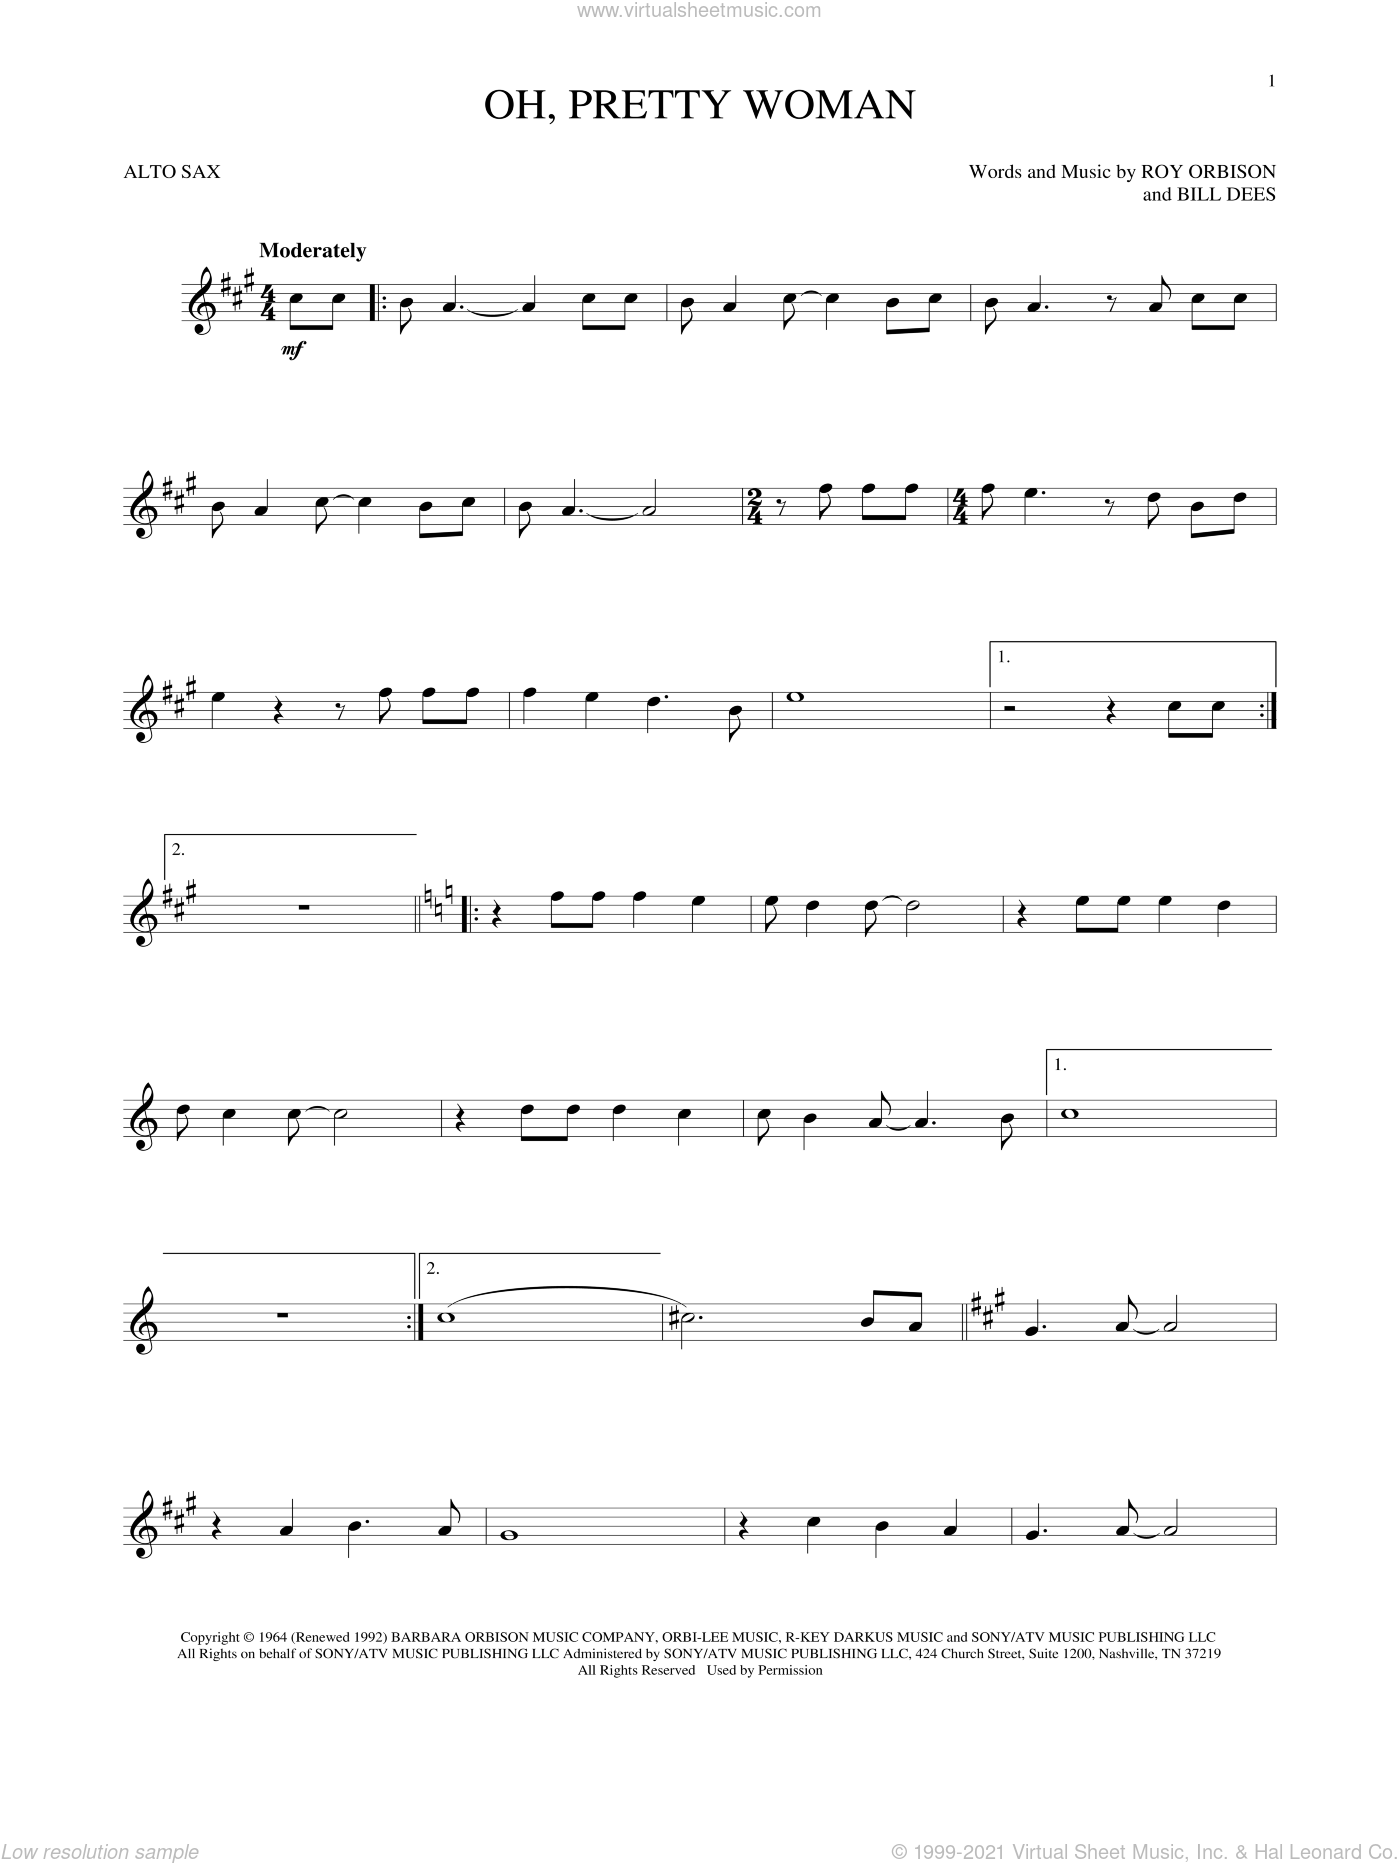 Oh, Pretty Woman sheet music for alto saxophone solo by Roy Orbison and Bill Dees, intermediate